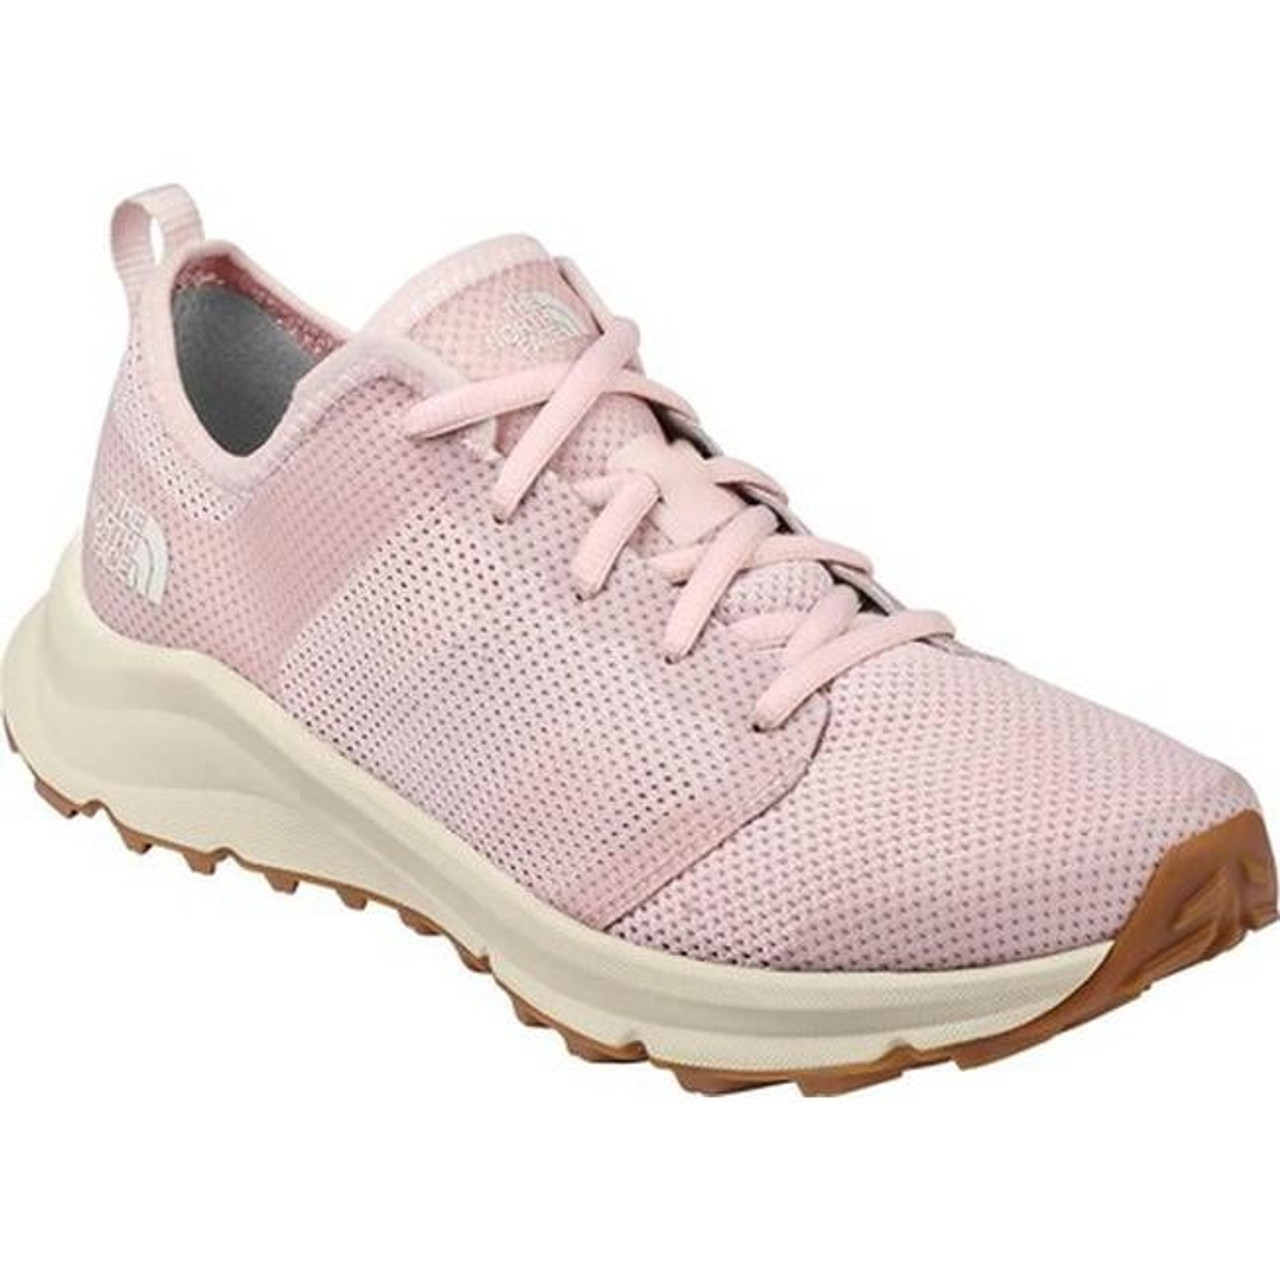 The North Face Womens Litewave Flow